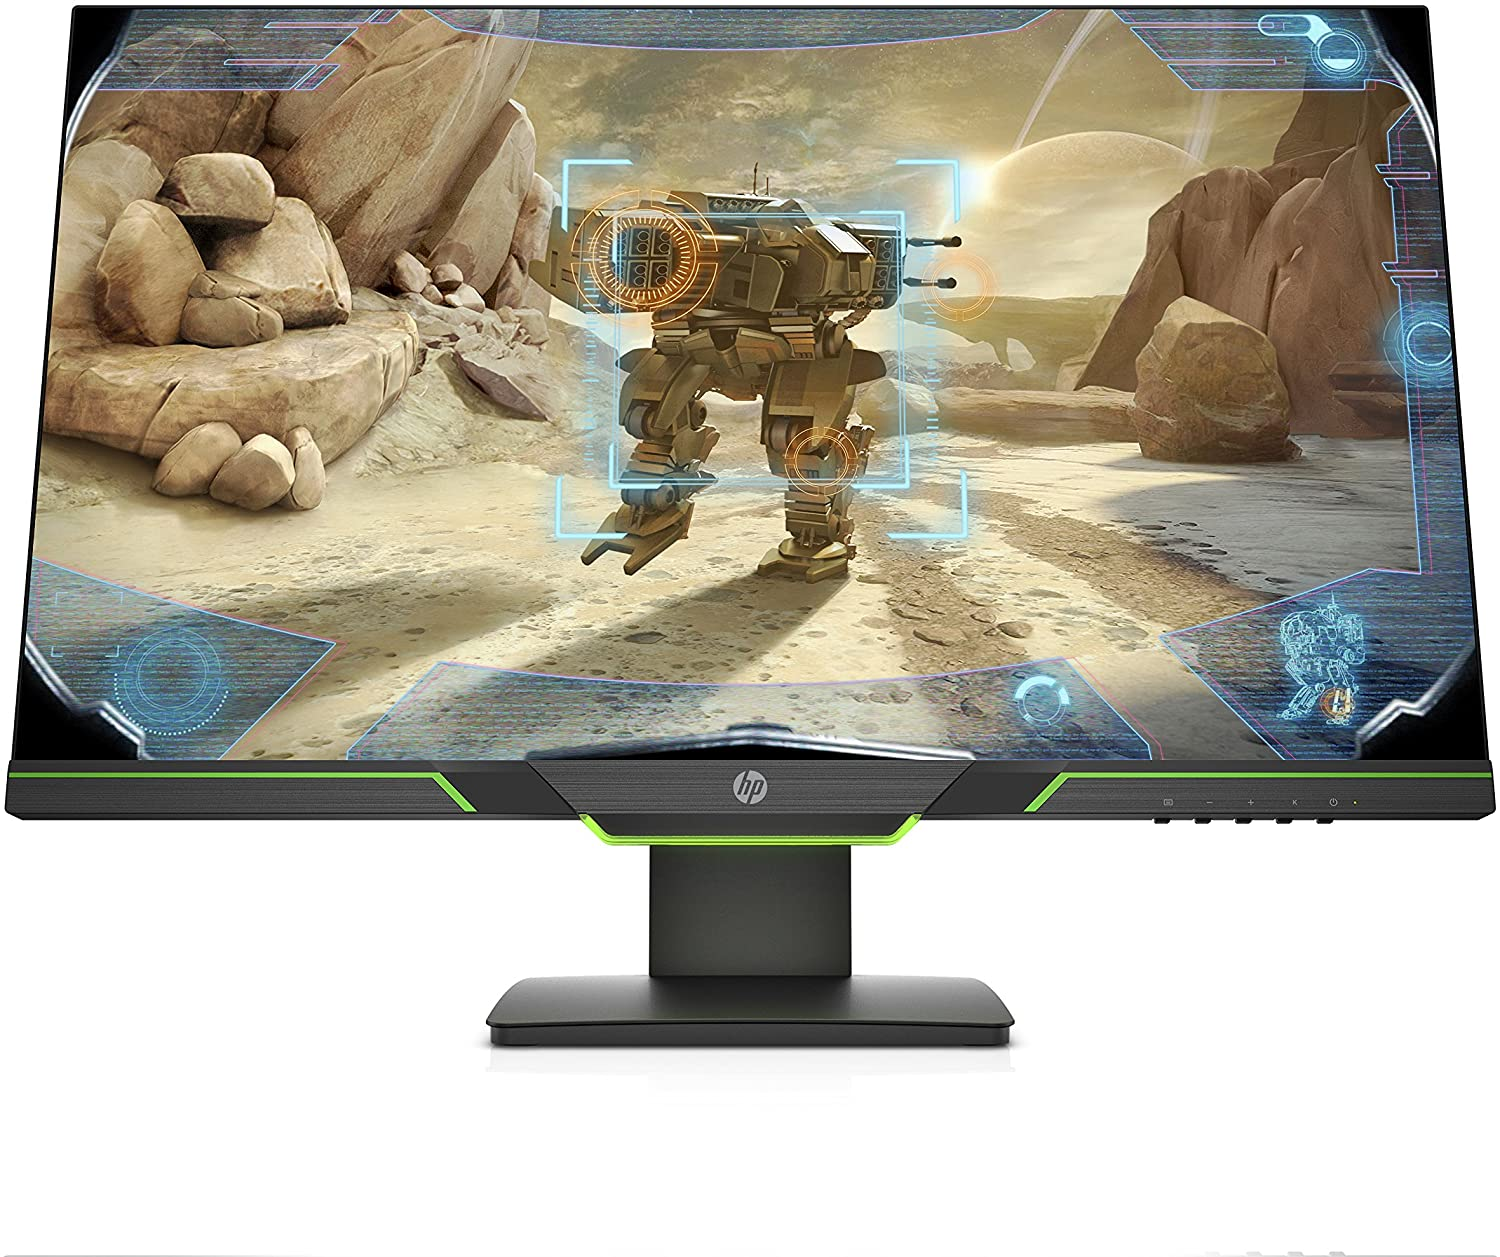 HP 27xq 27-inch QHD 1440p 144Hz 1ms Gaming Monitor with AMD FreeSync, Ambient Lighting, Height/Tilt Adjustable, and Narrow Bezel (5SQ42AA#ABA), Black